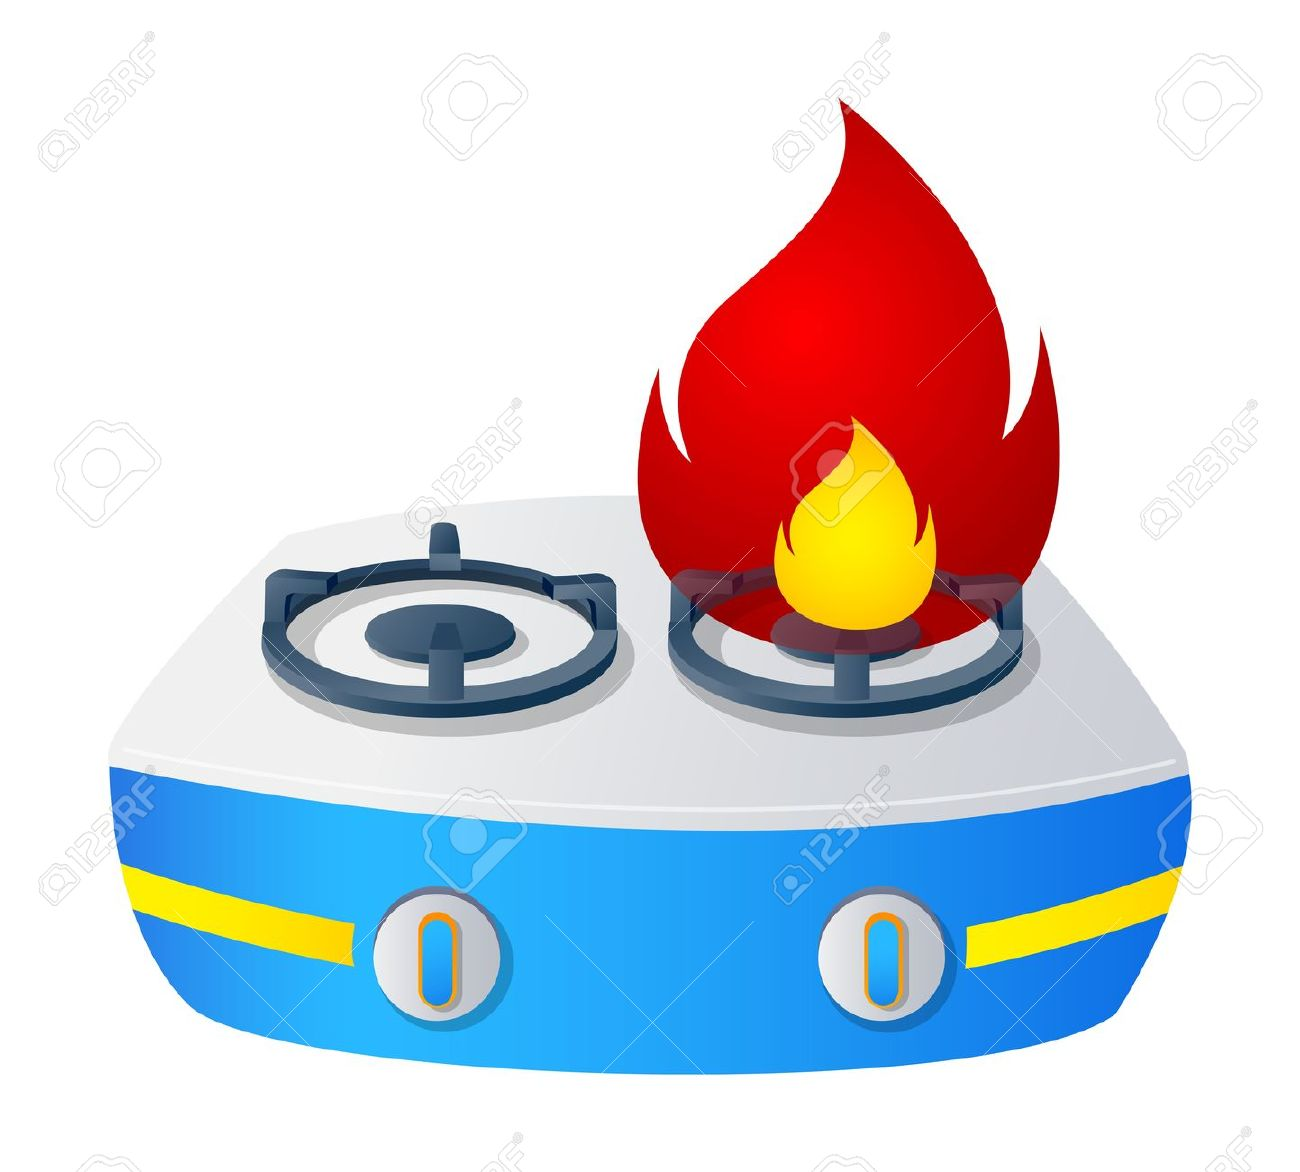 Gas burner clipart picture library download Stove Clipart | Free download best Stove Clipart on ClipArtMag.com picture library download